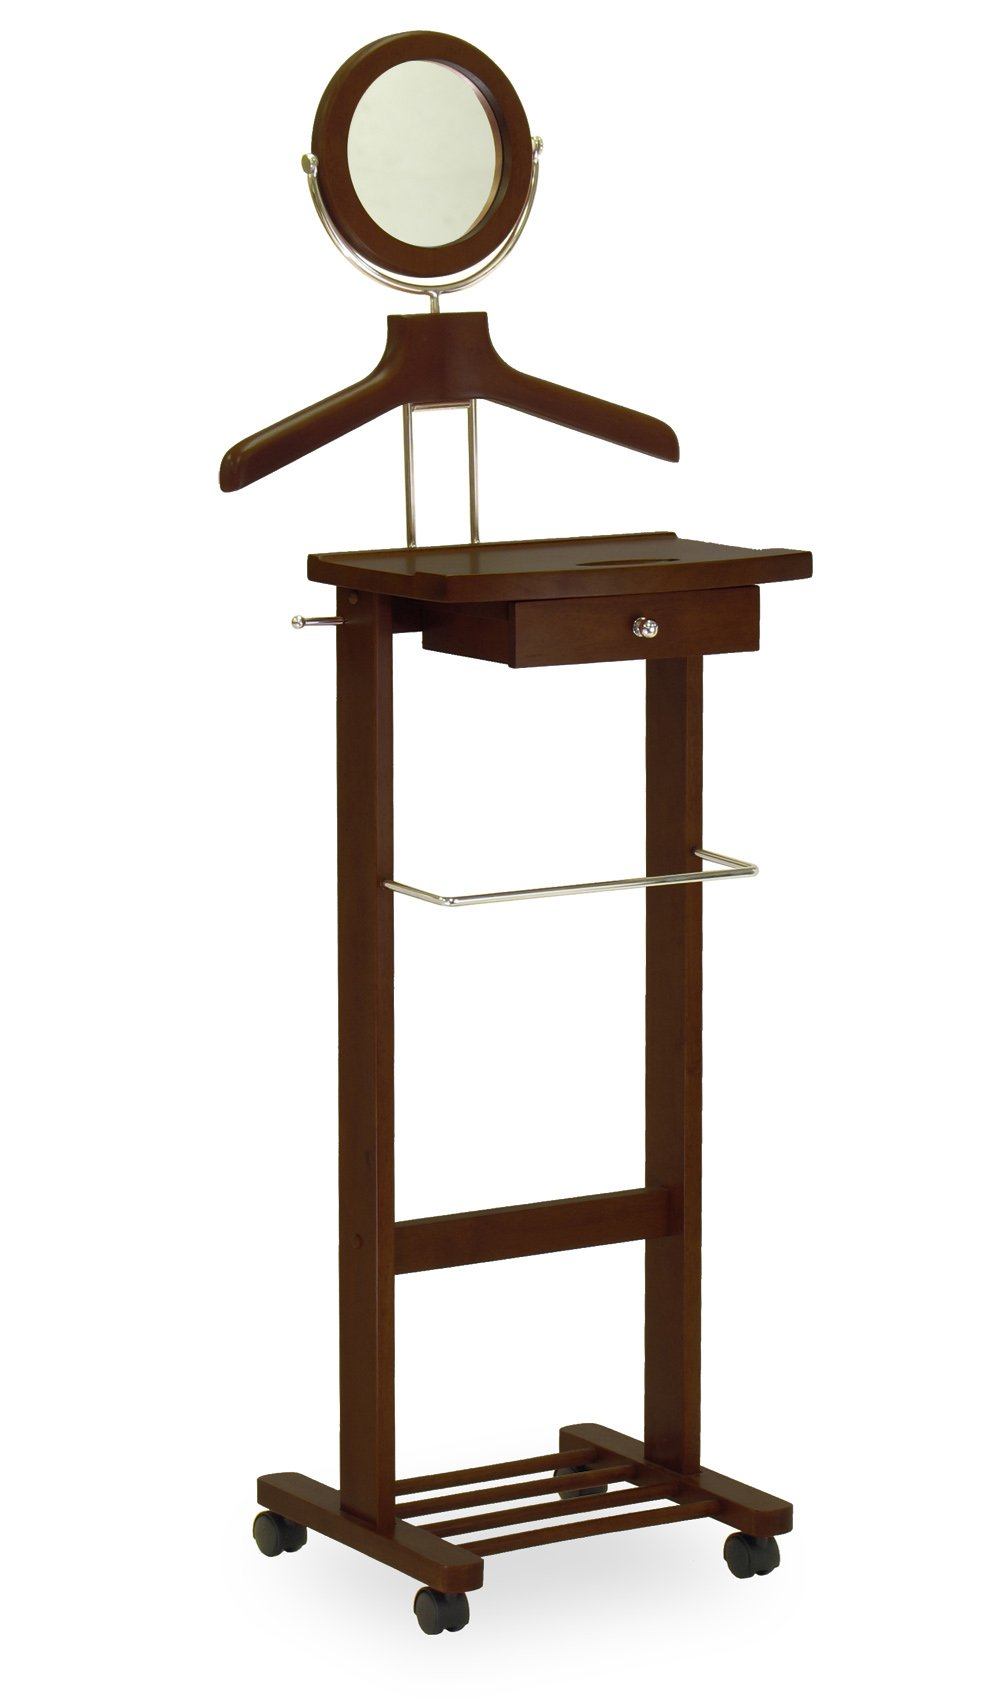 Winsome Wood Valet Stand, Walnut by Winsome